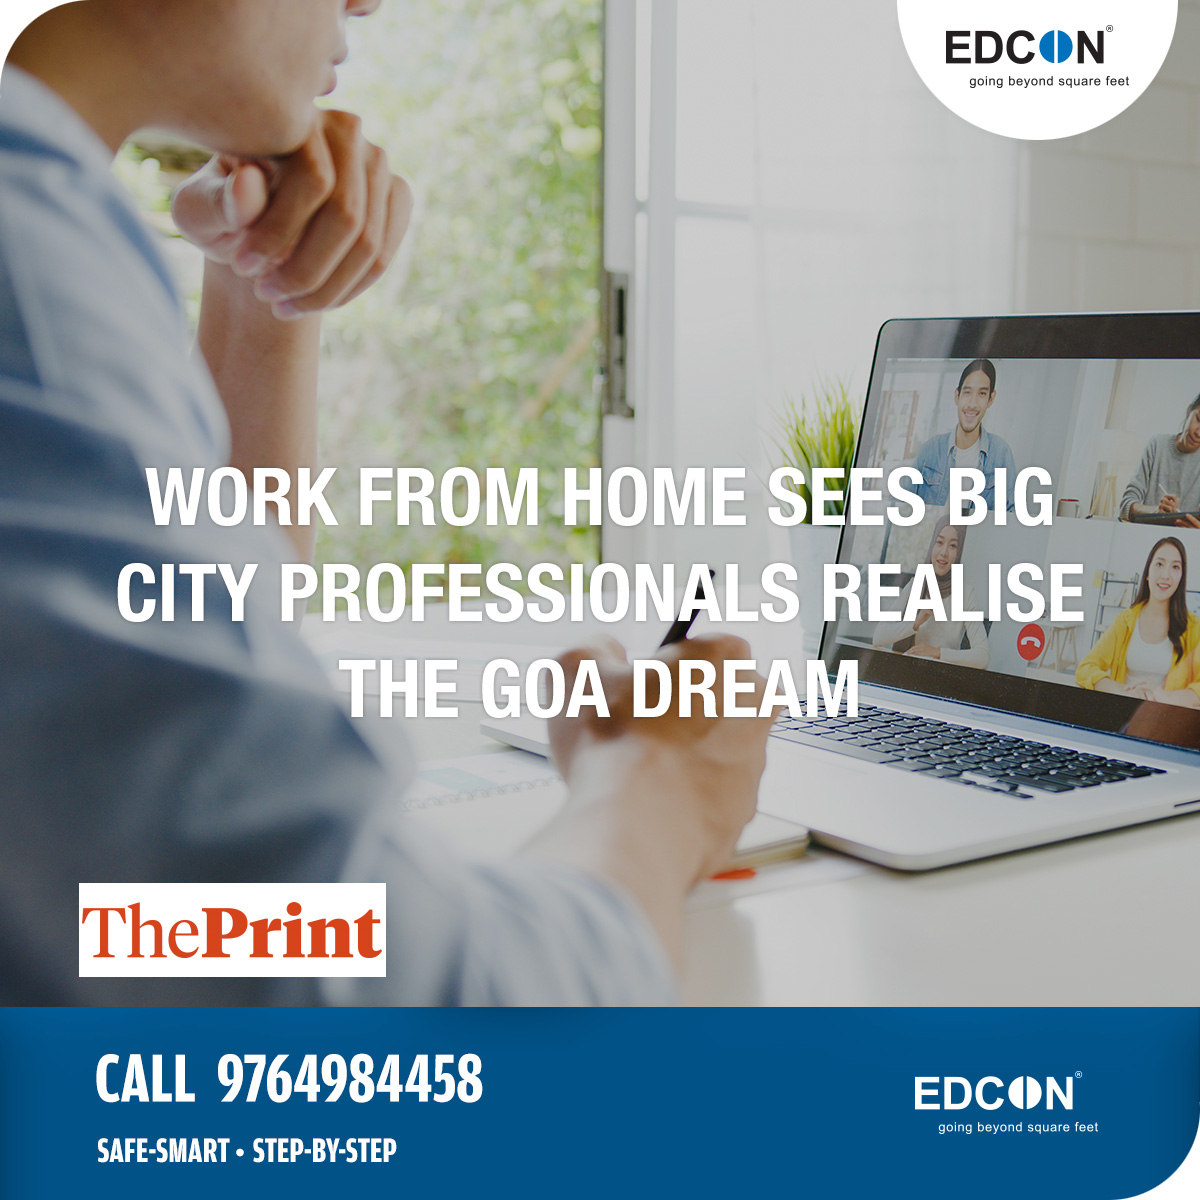 Work from home sees big city professionals realise the Goa dream